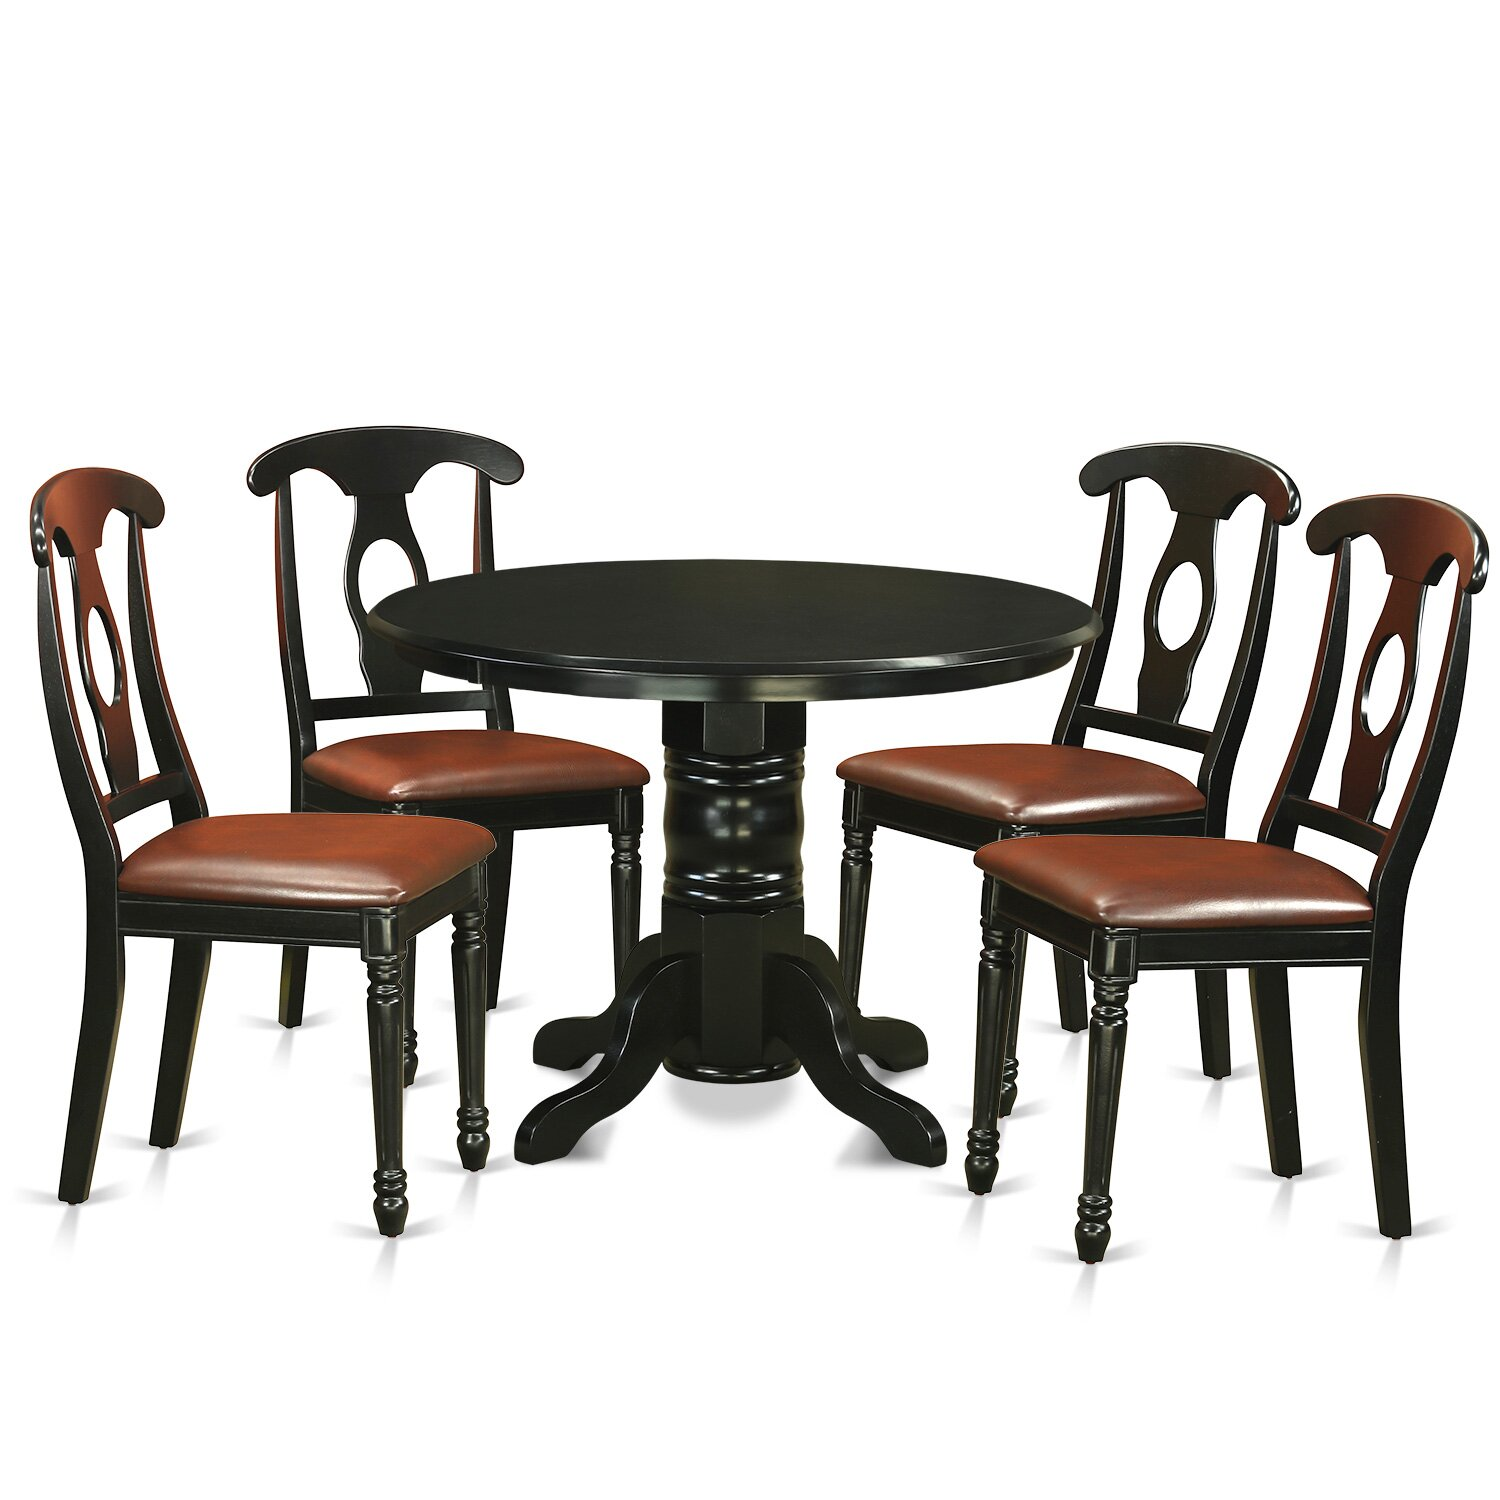 East west shelton 5 piece dining set reviews wayfair for Dining room sets 4 chairs